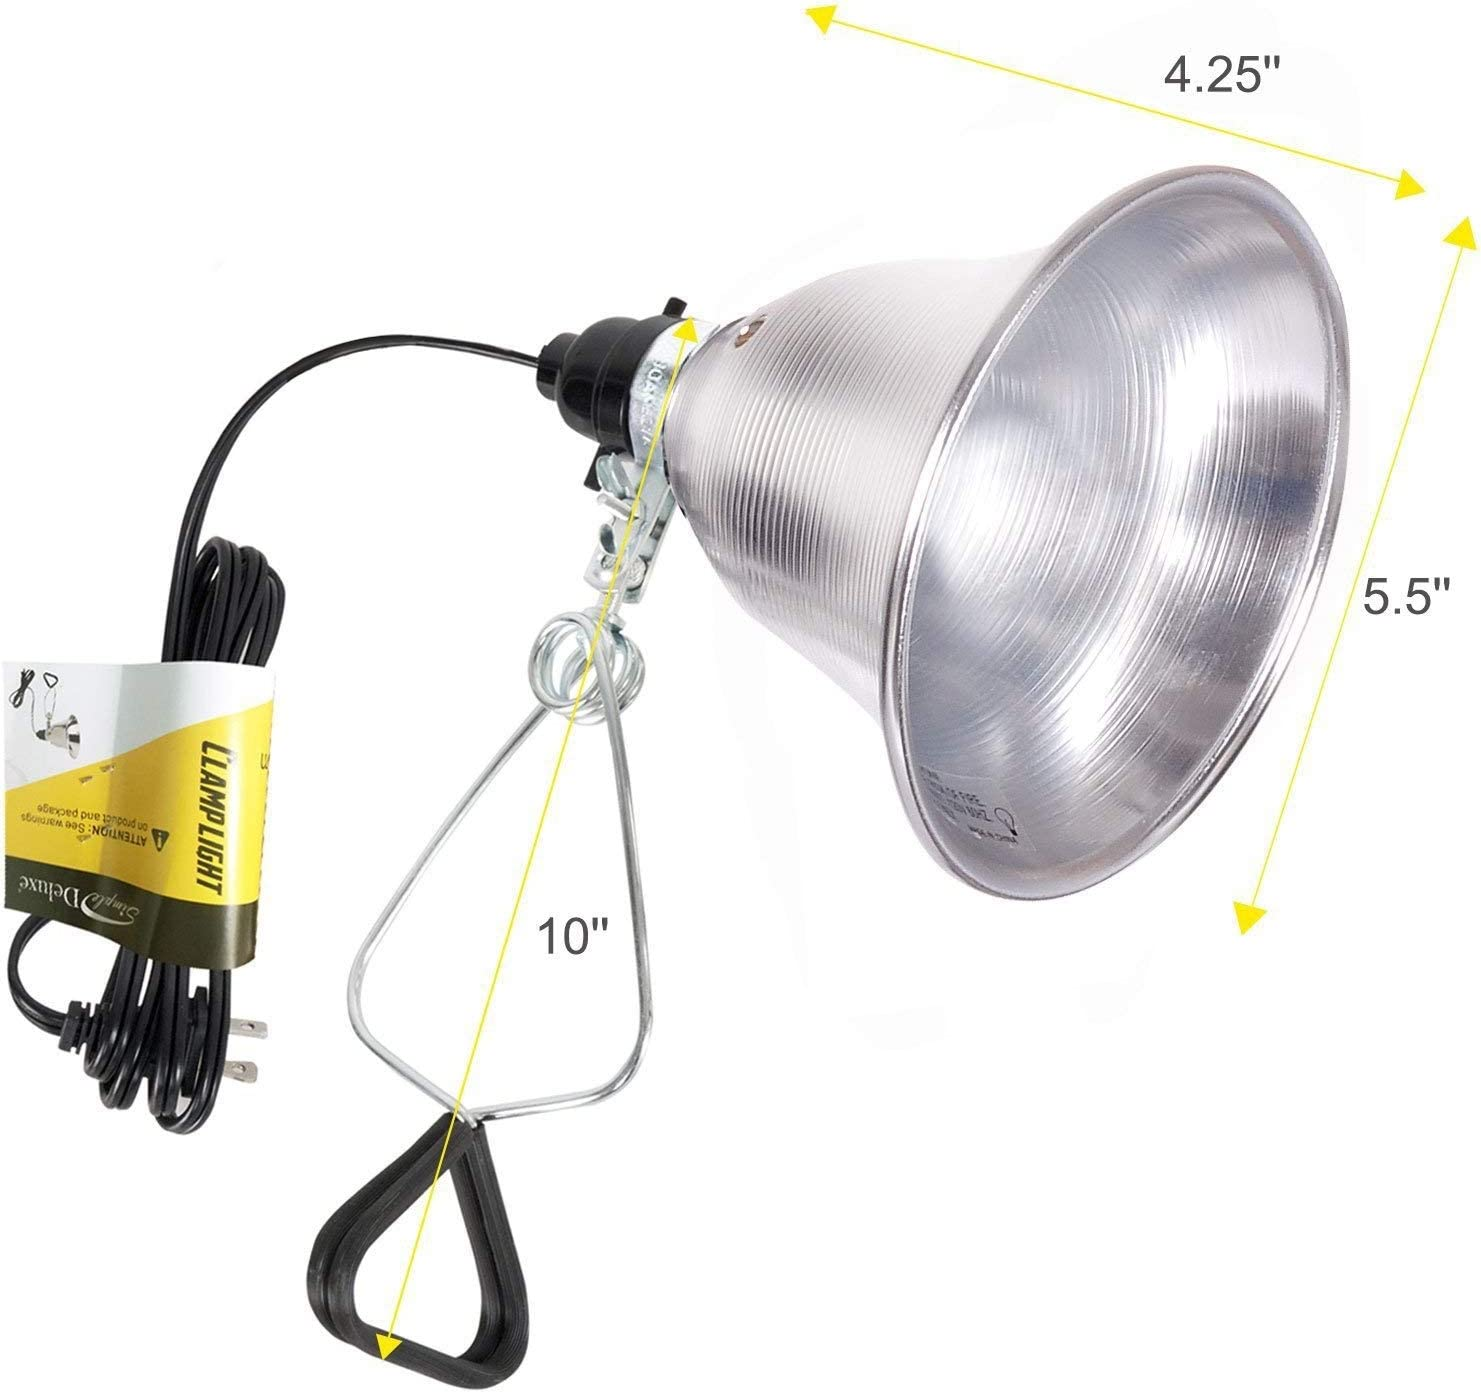 6 Feet 18//2 SPT-2 Cord UL Listed HIWKLTCLAMPLIGHTMX12 Simple Deluxe 12-Pack Clamp Lamp Light with 8.5 Inch Aluminum Reflector up to 150 Watt E26 Socket no Bulb Included